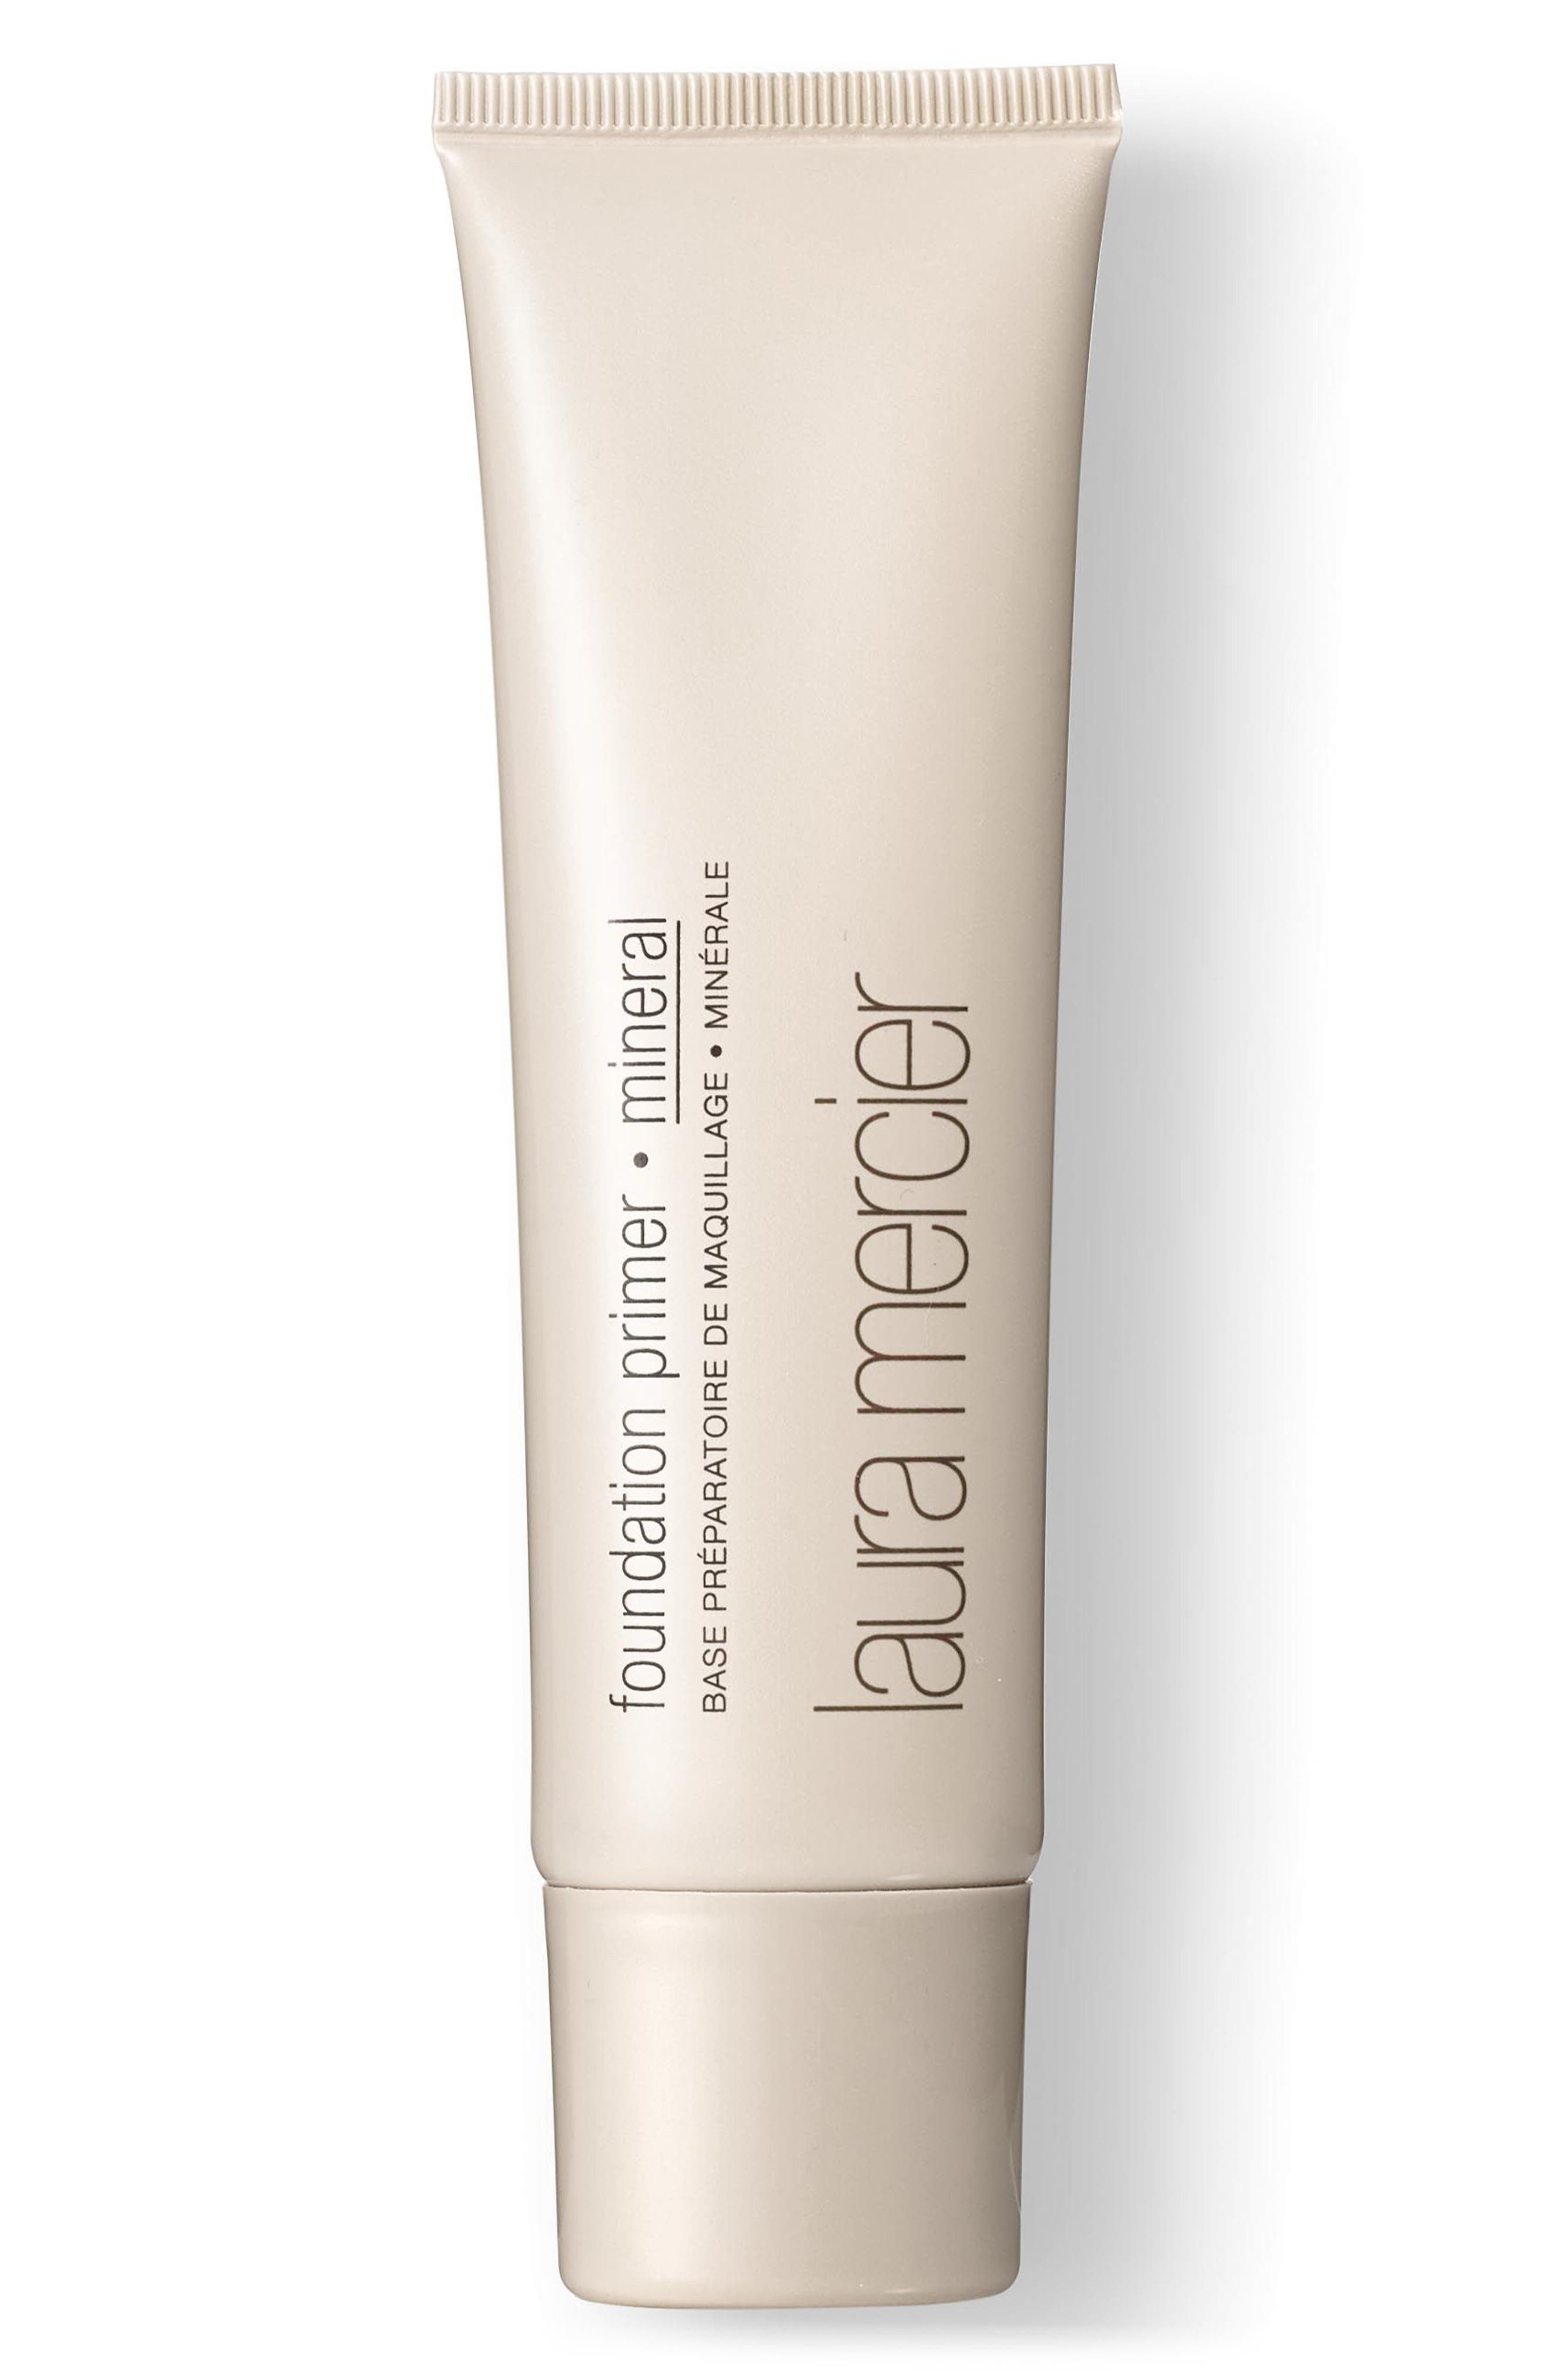 Alternate Image 1 Selected - Laura Mercier 'Mineral' Foundation Primer (1.7 oz.)